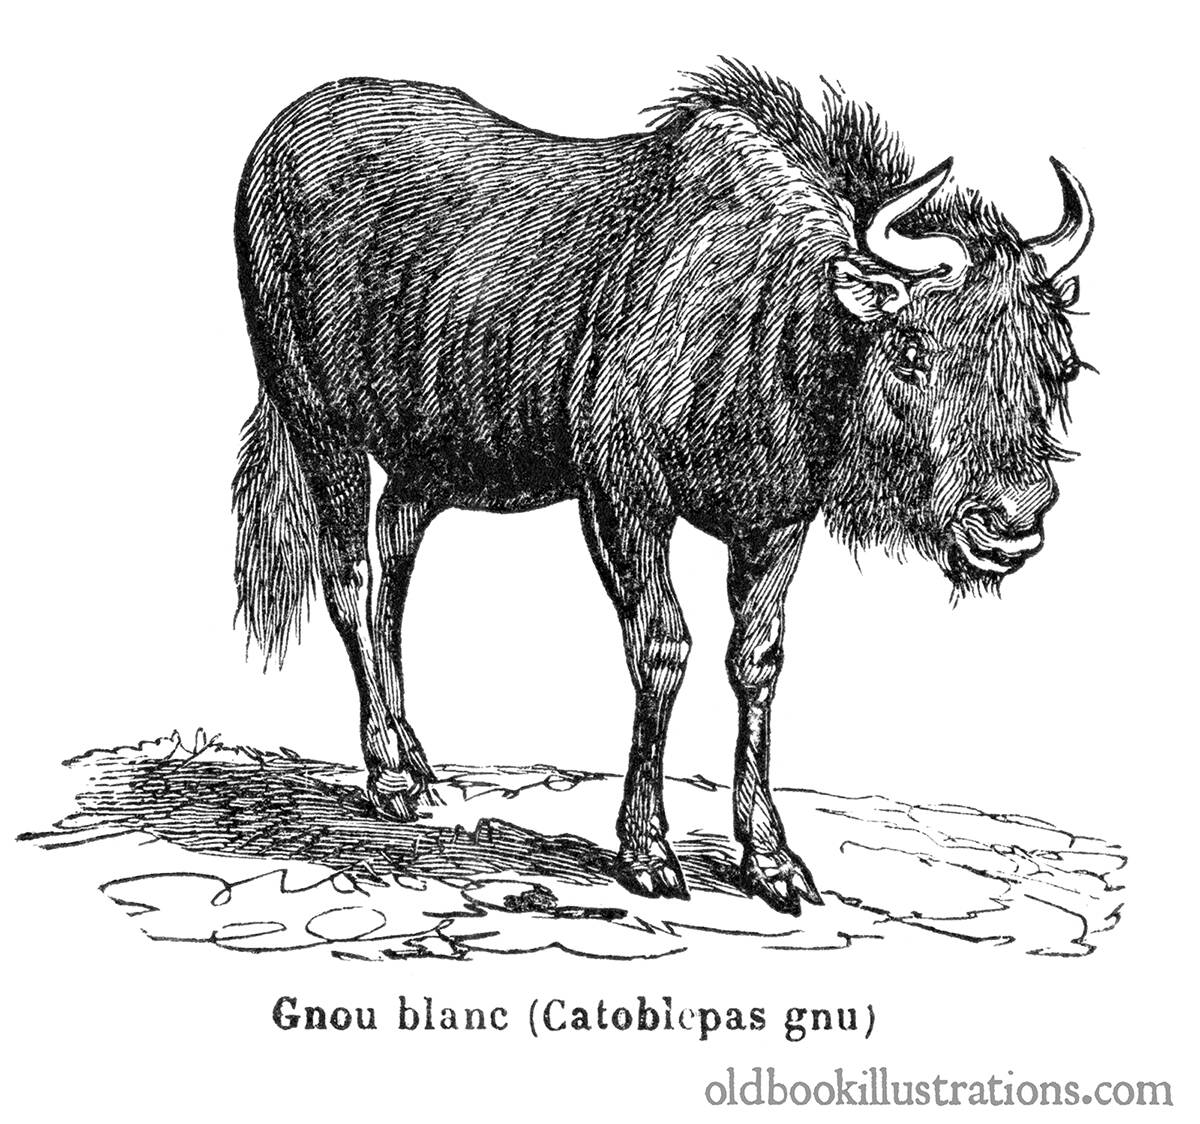 Image of a Wildebeest